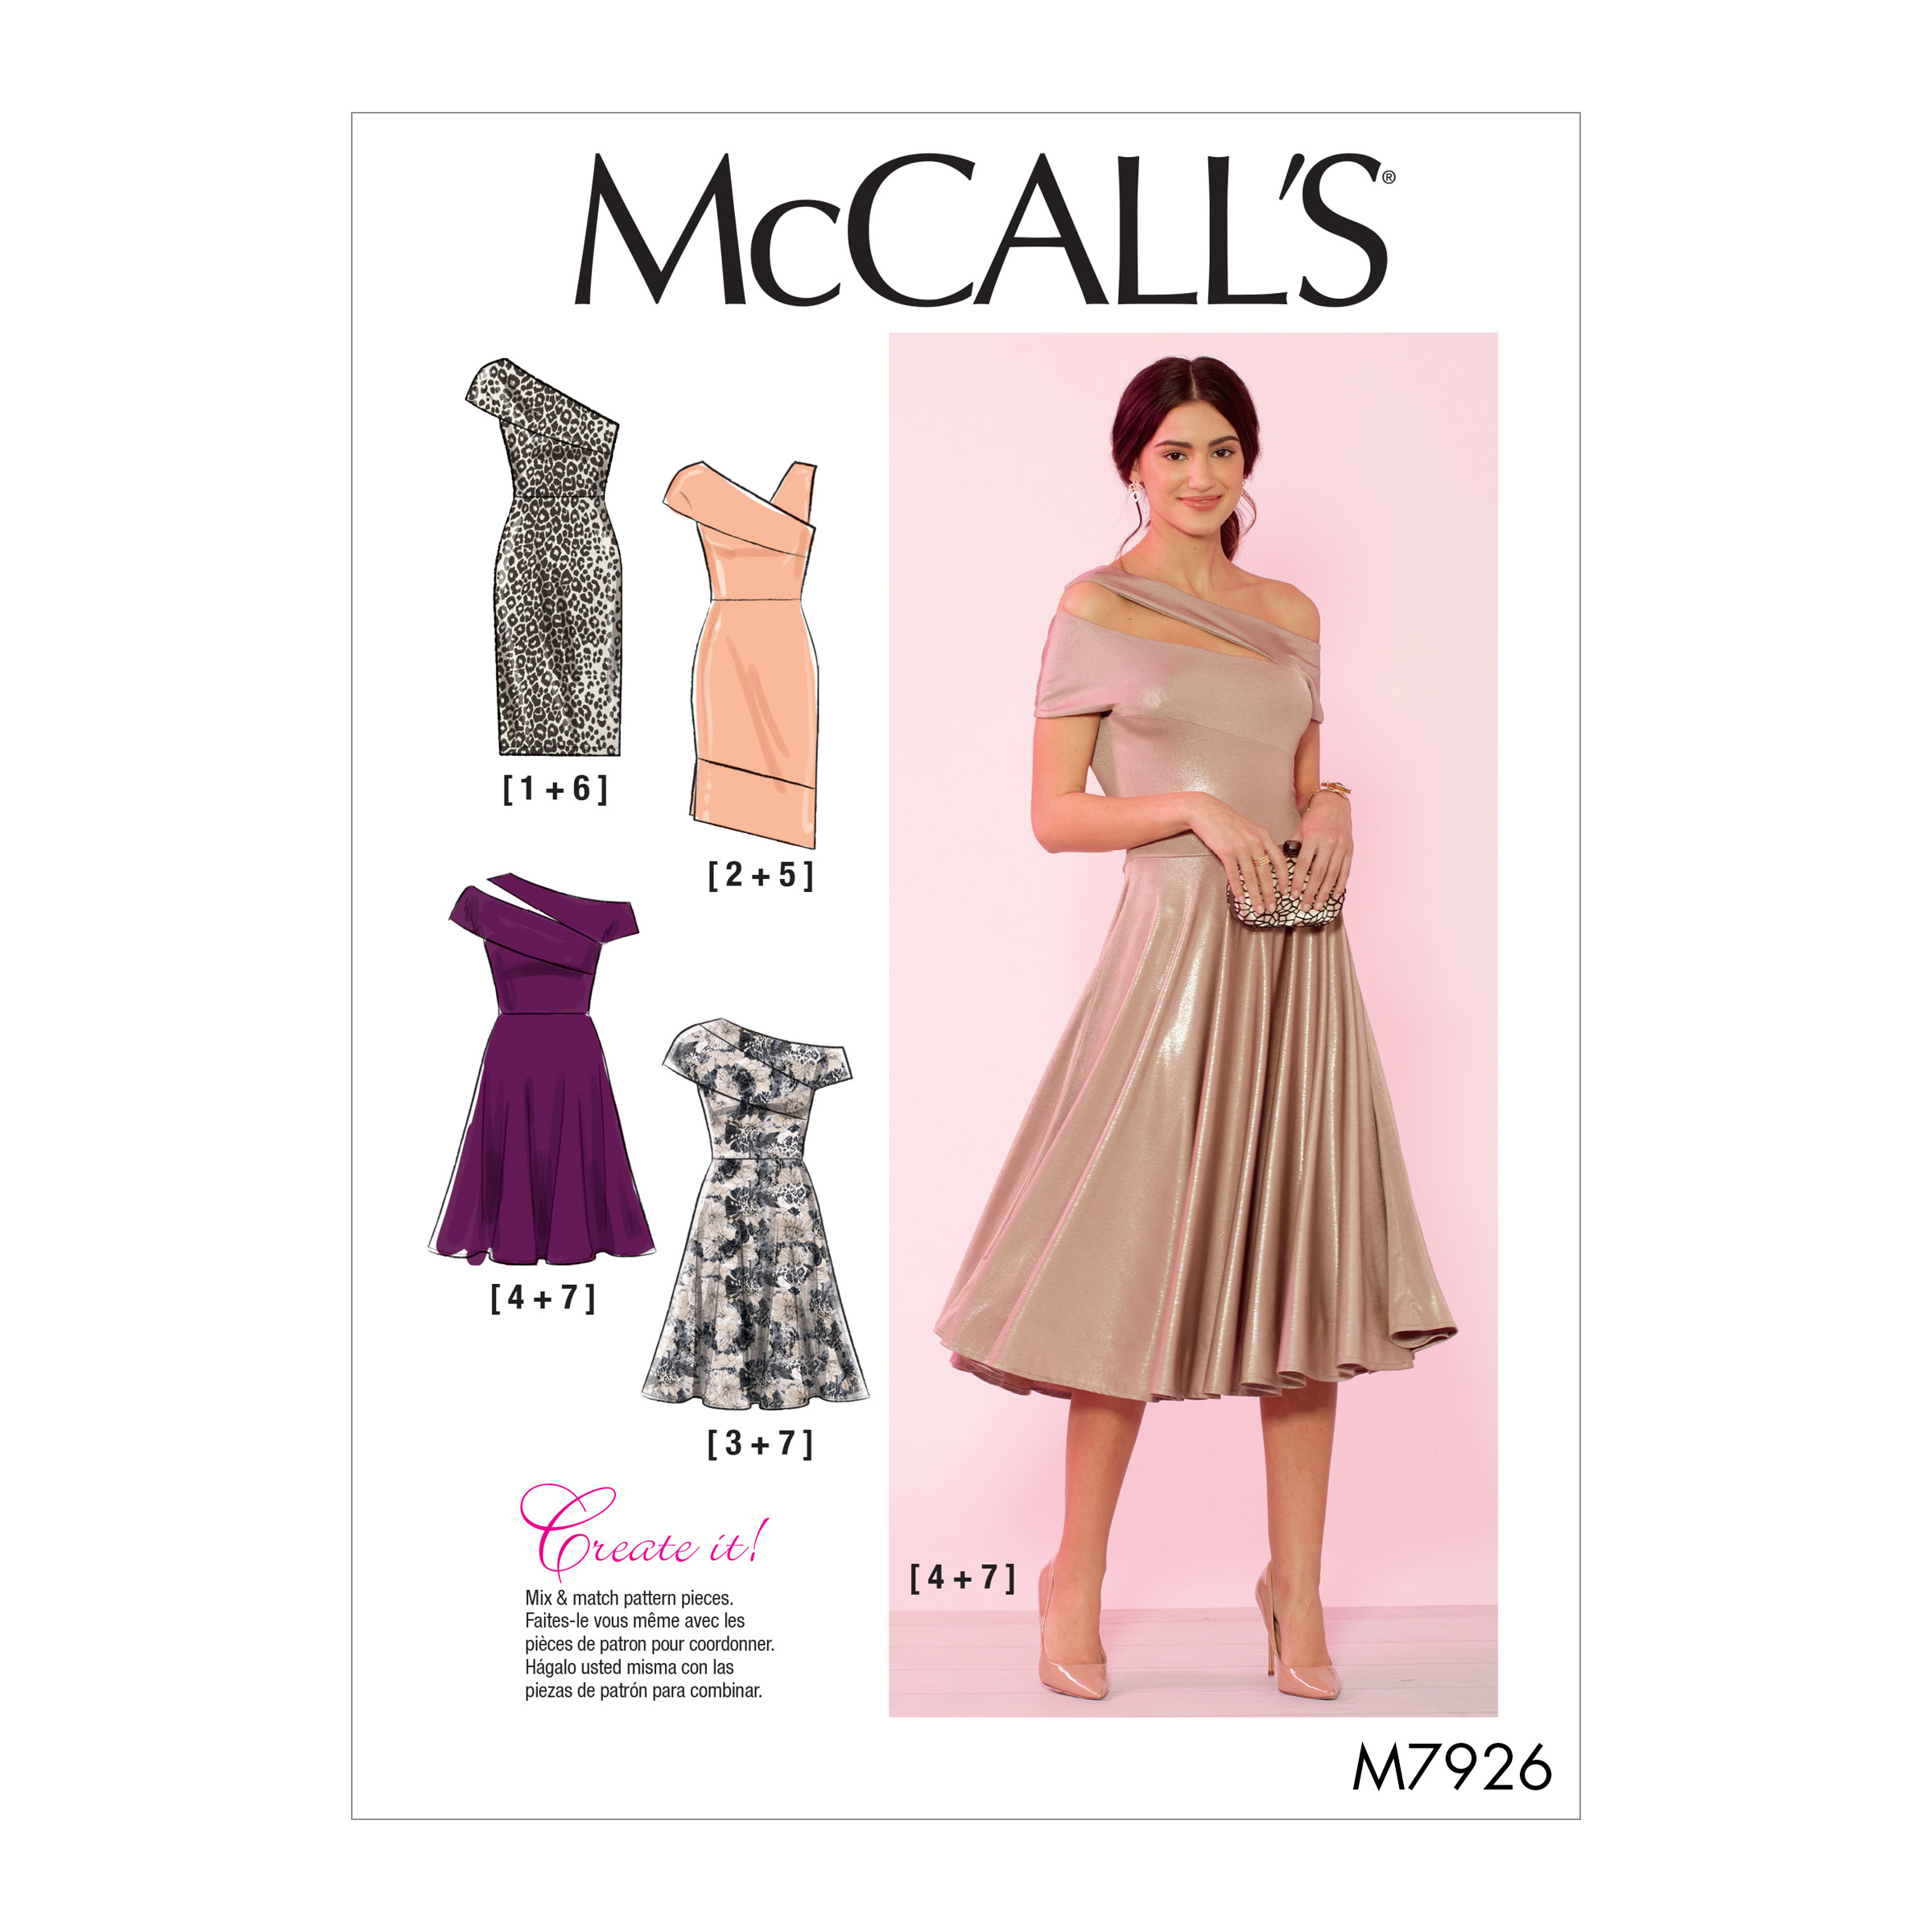 e8e5ec7e742d7 McCall's 7926 Misses' and Women's Special Occasion Dresses